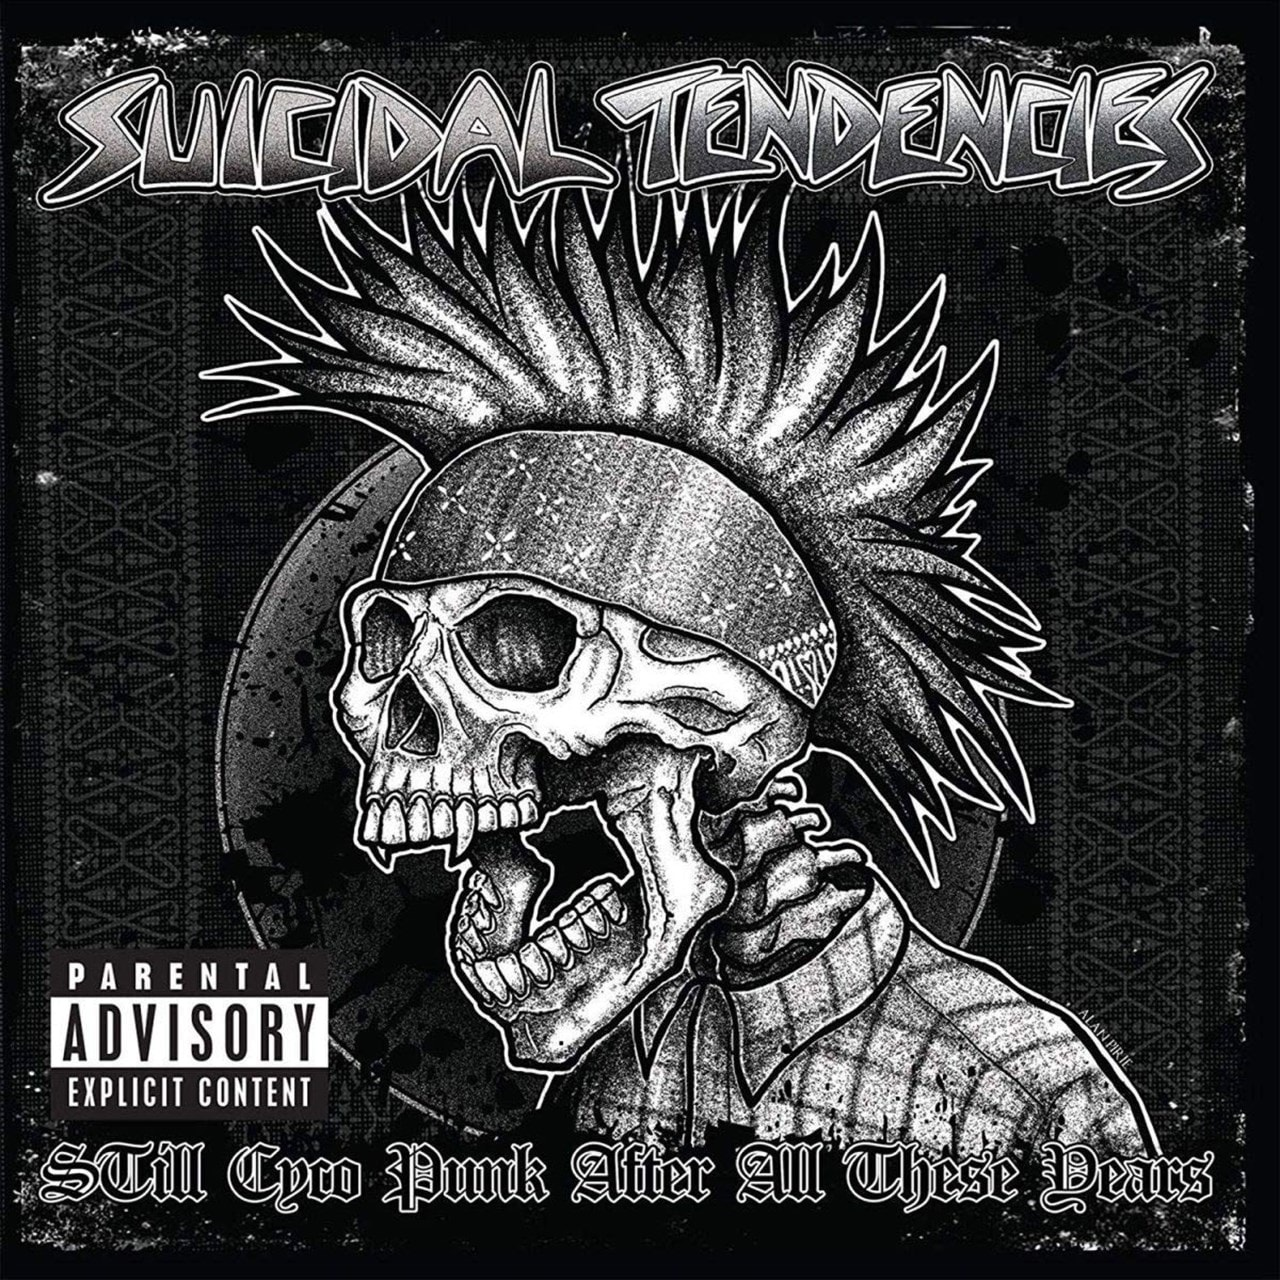 Still Cyco Punk After All These Years - 1